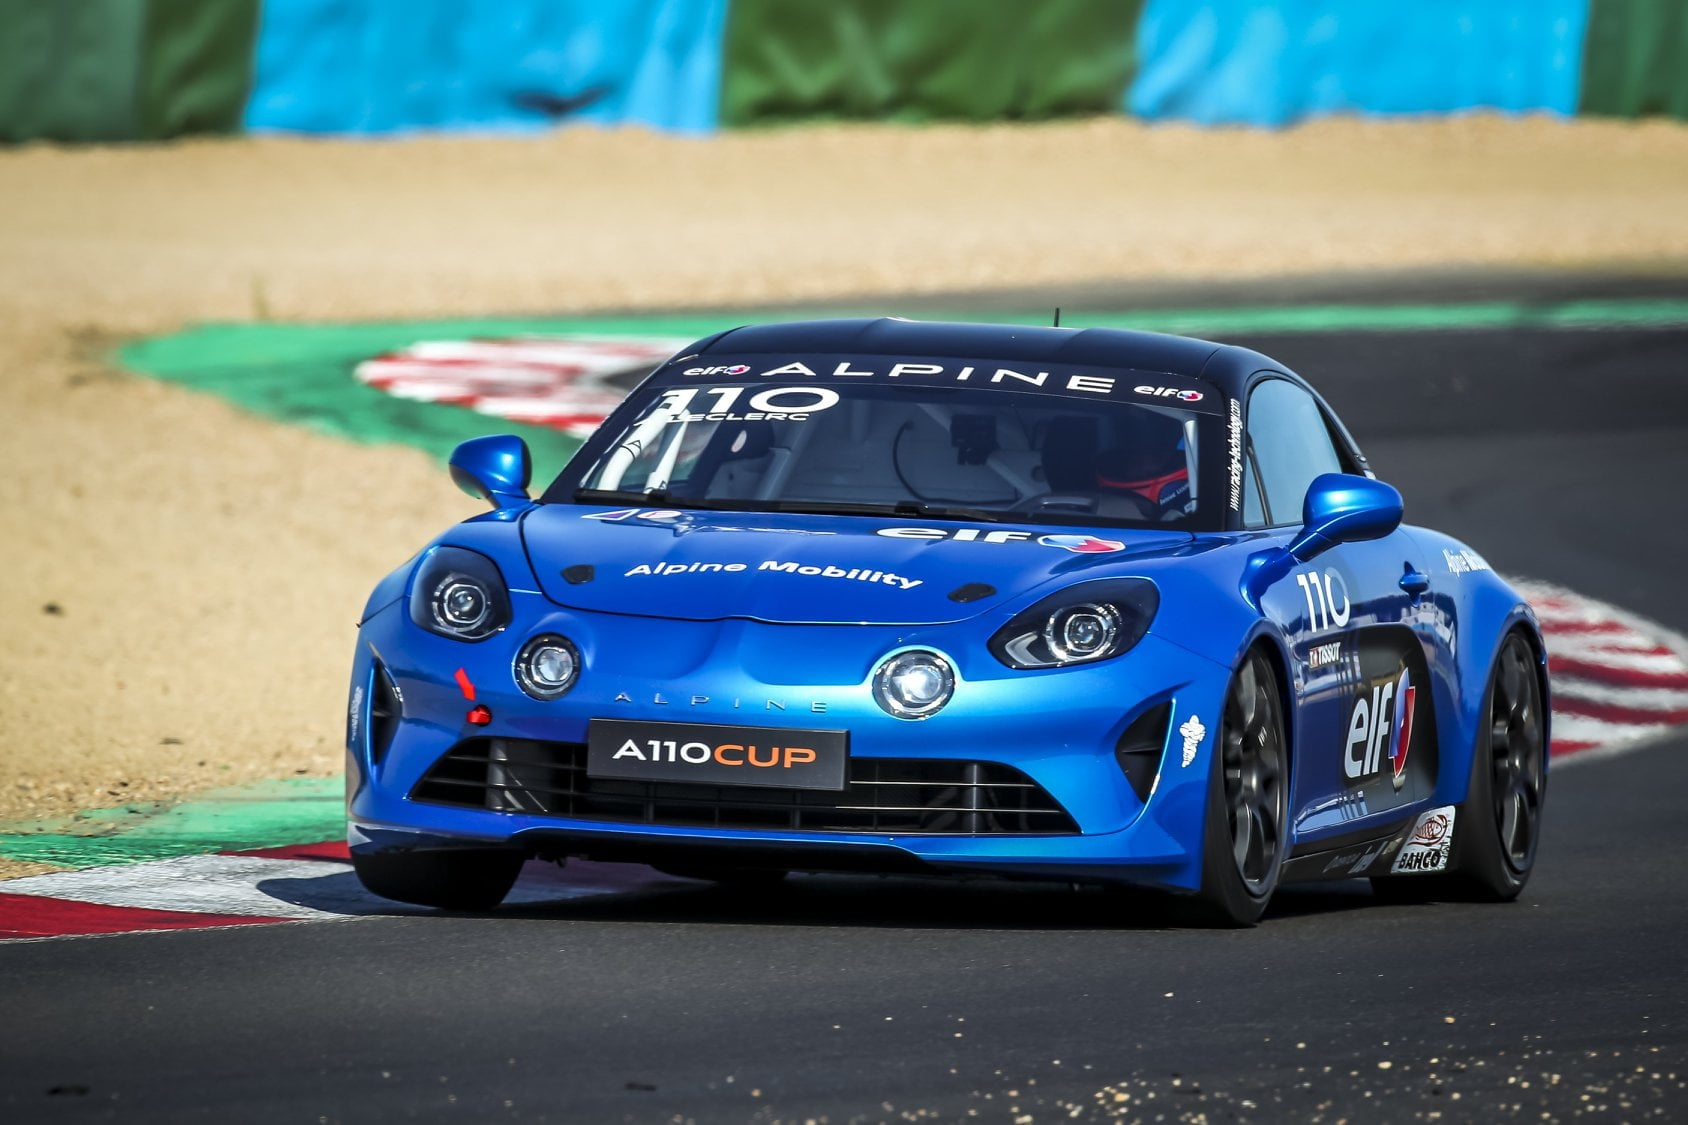 Alpine Elf Europa Cup 2020 Magny Cours A110 Cup 12 | Alpine Elf Europa Cup 2020: Jean-Baptiste Mela triomphe à Magny-Cours